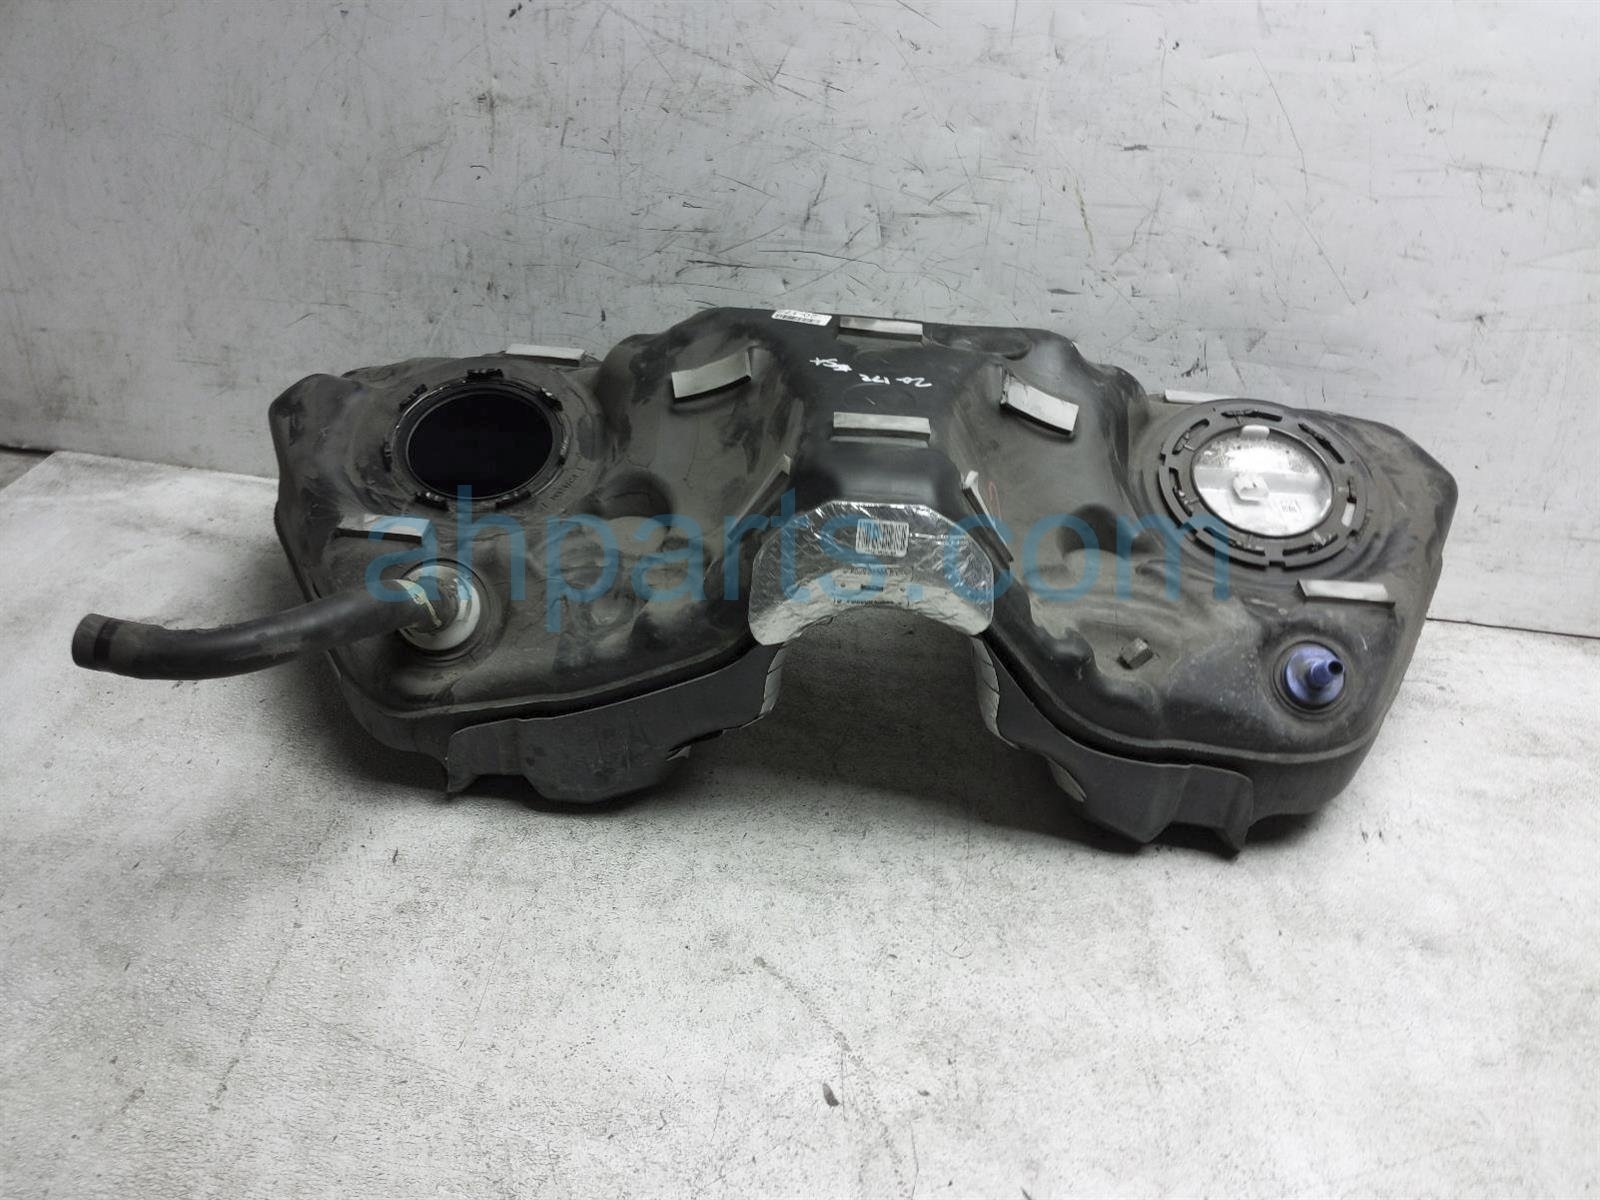 2017 Ford Mustang Gas / Fuel Tank FR3Z 9002 B Replacement